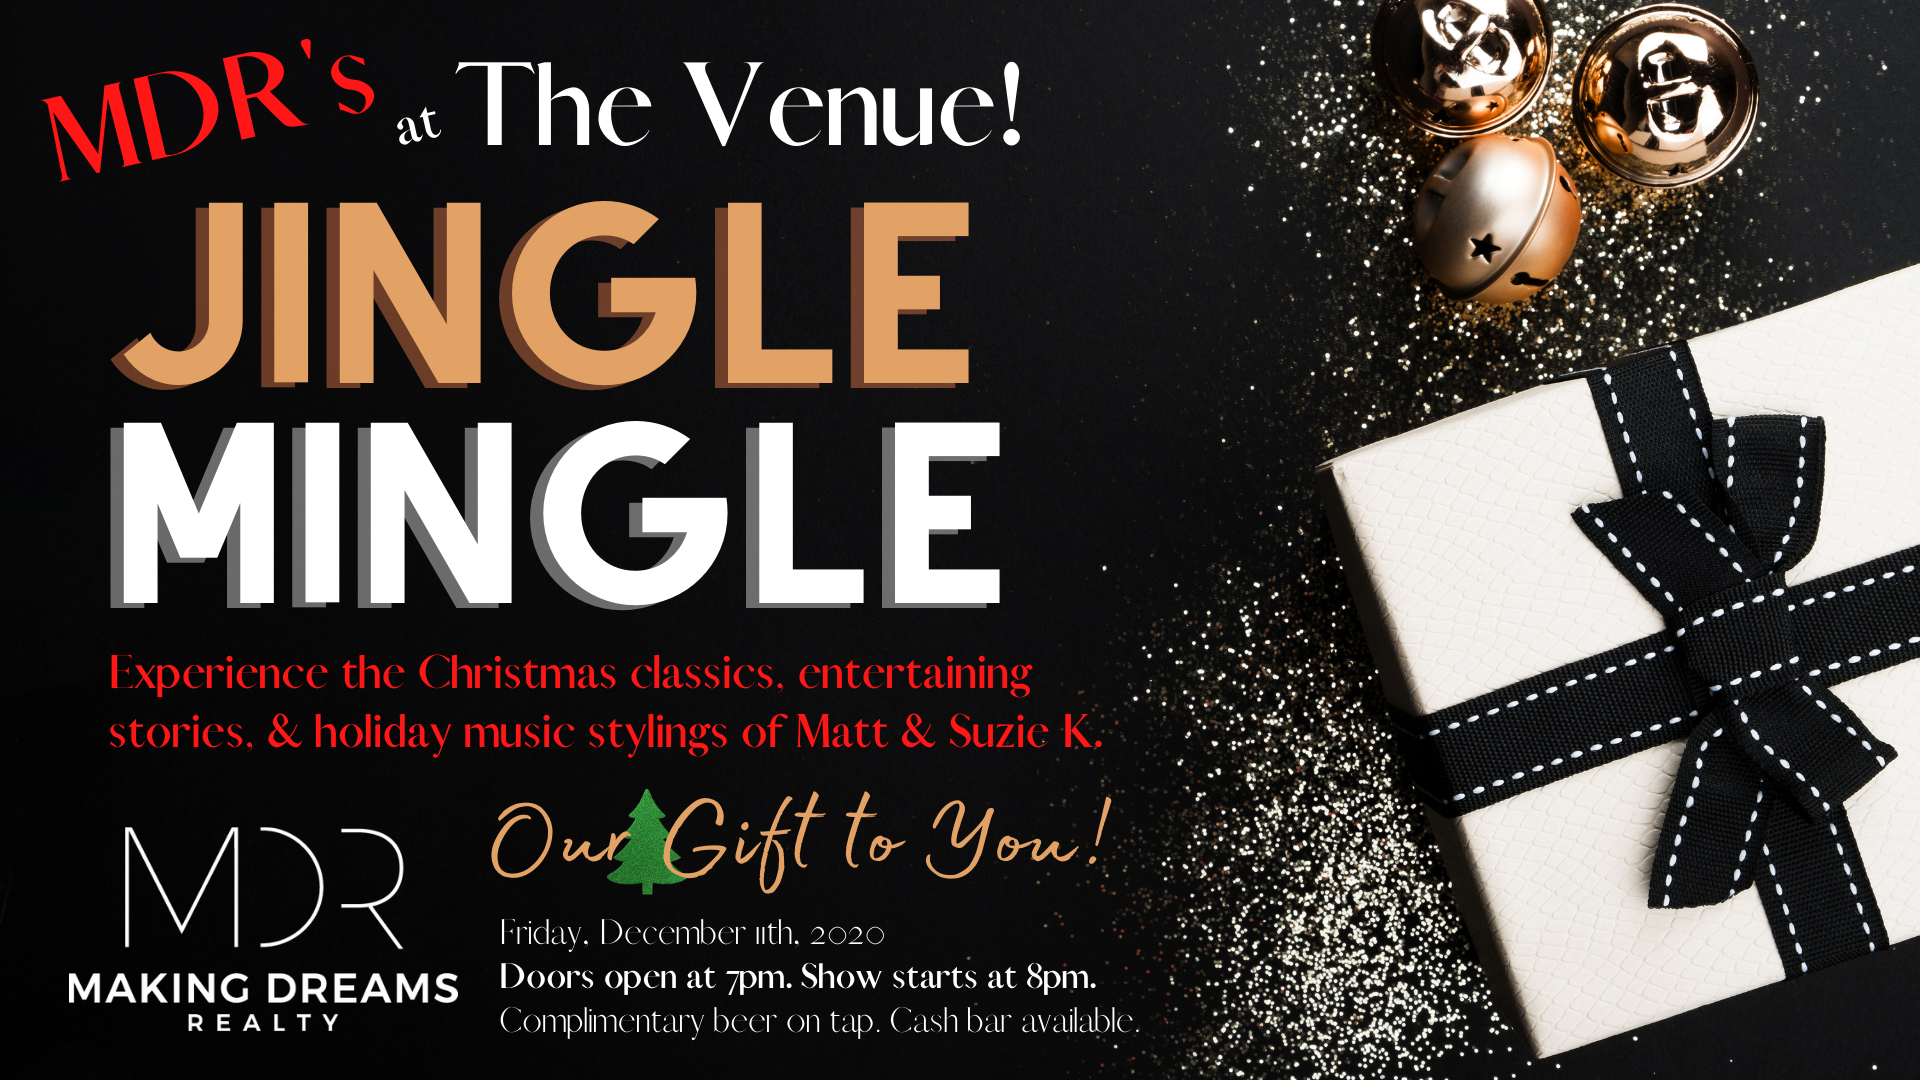 MAKING DREAMS Realty Holiday Event 2020: Jingle Mingle